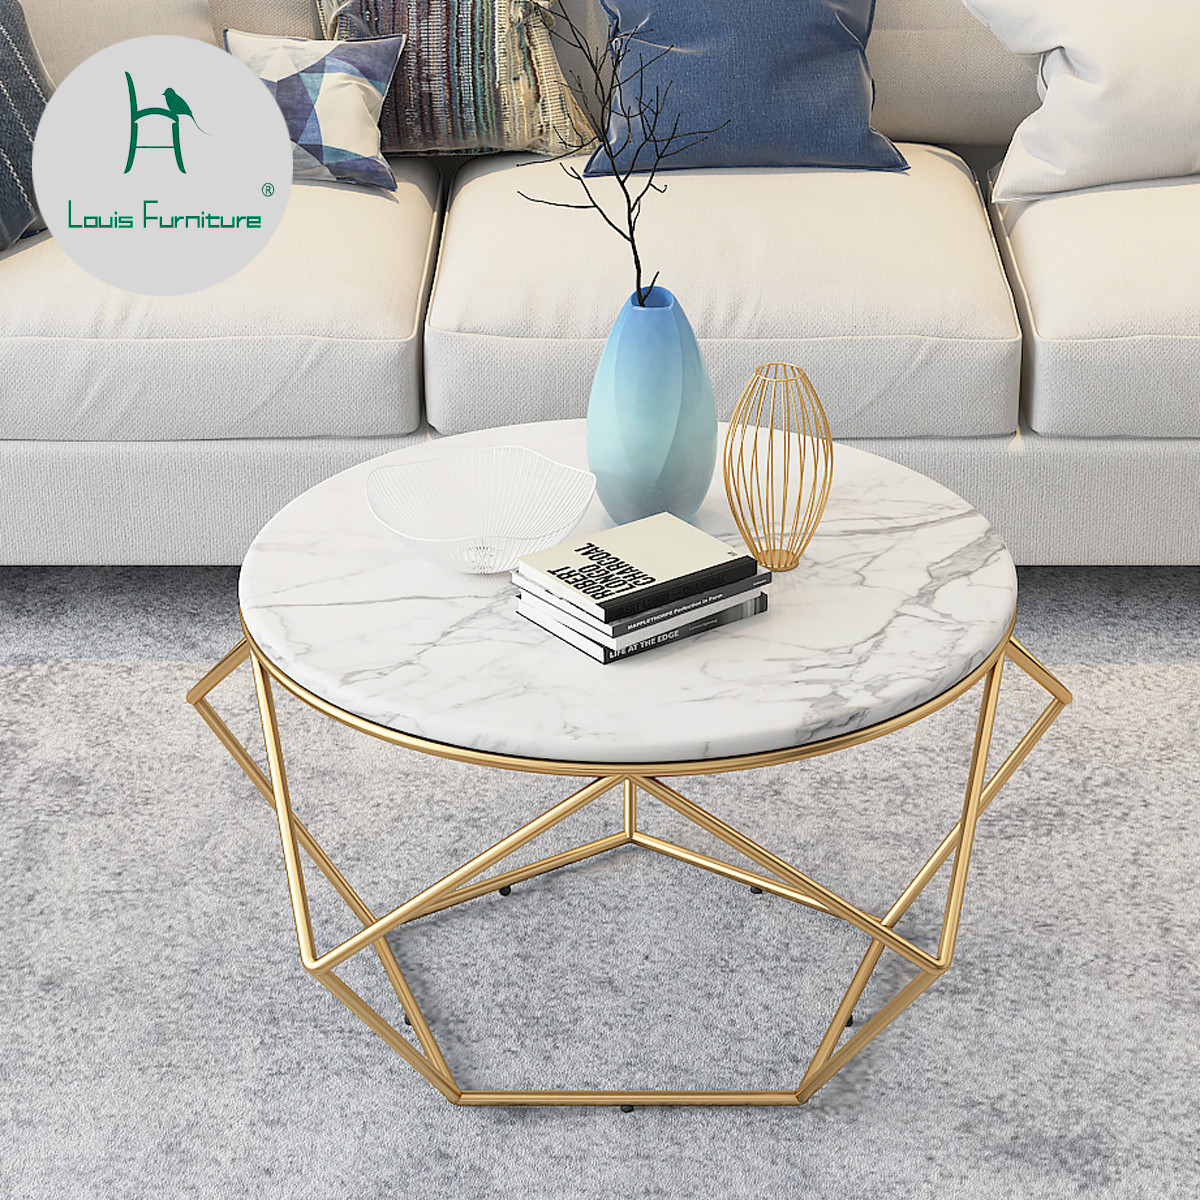 Lighted End Tables Living Room Furniture: Louis Fashion Coffee Tables Nordic Light Luxurious Round